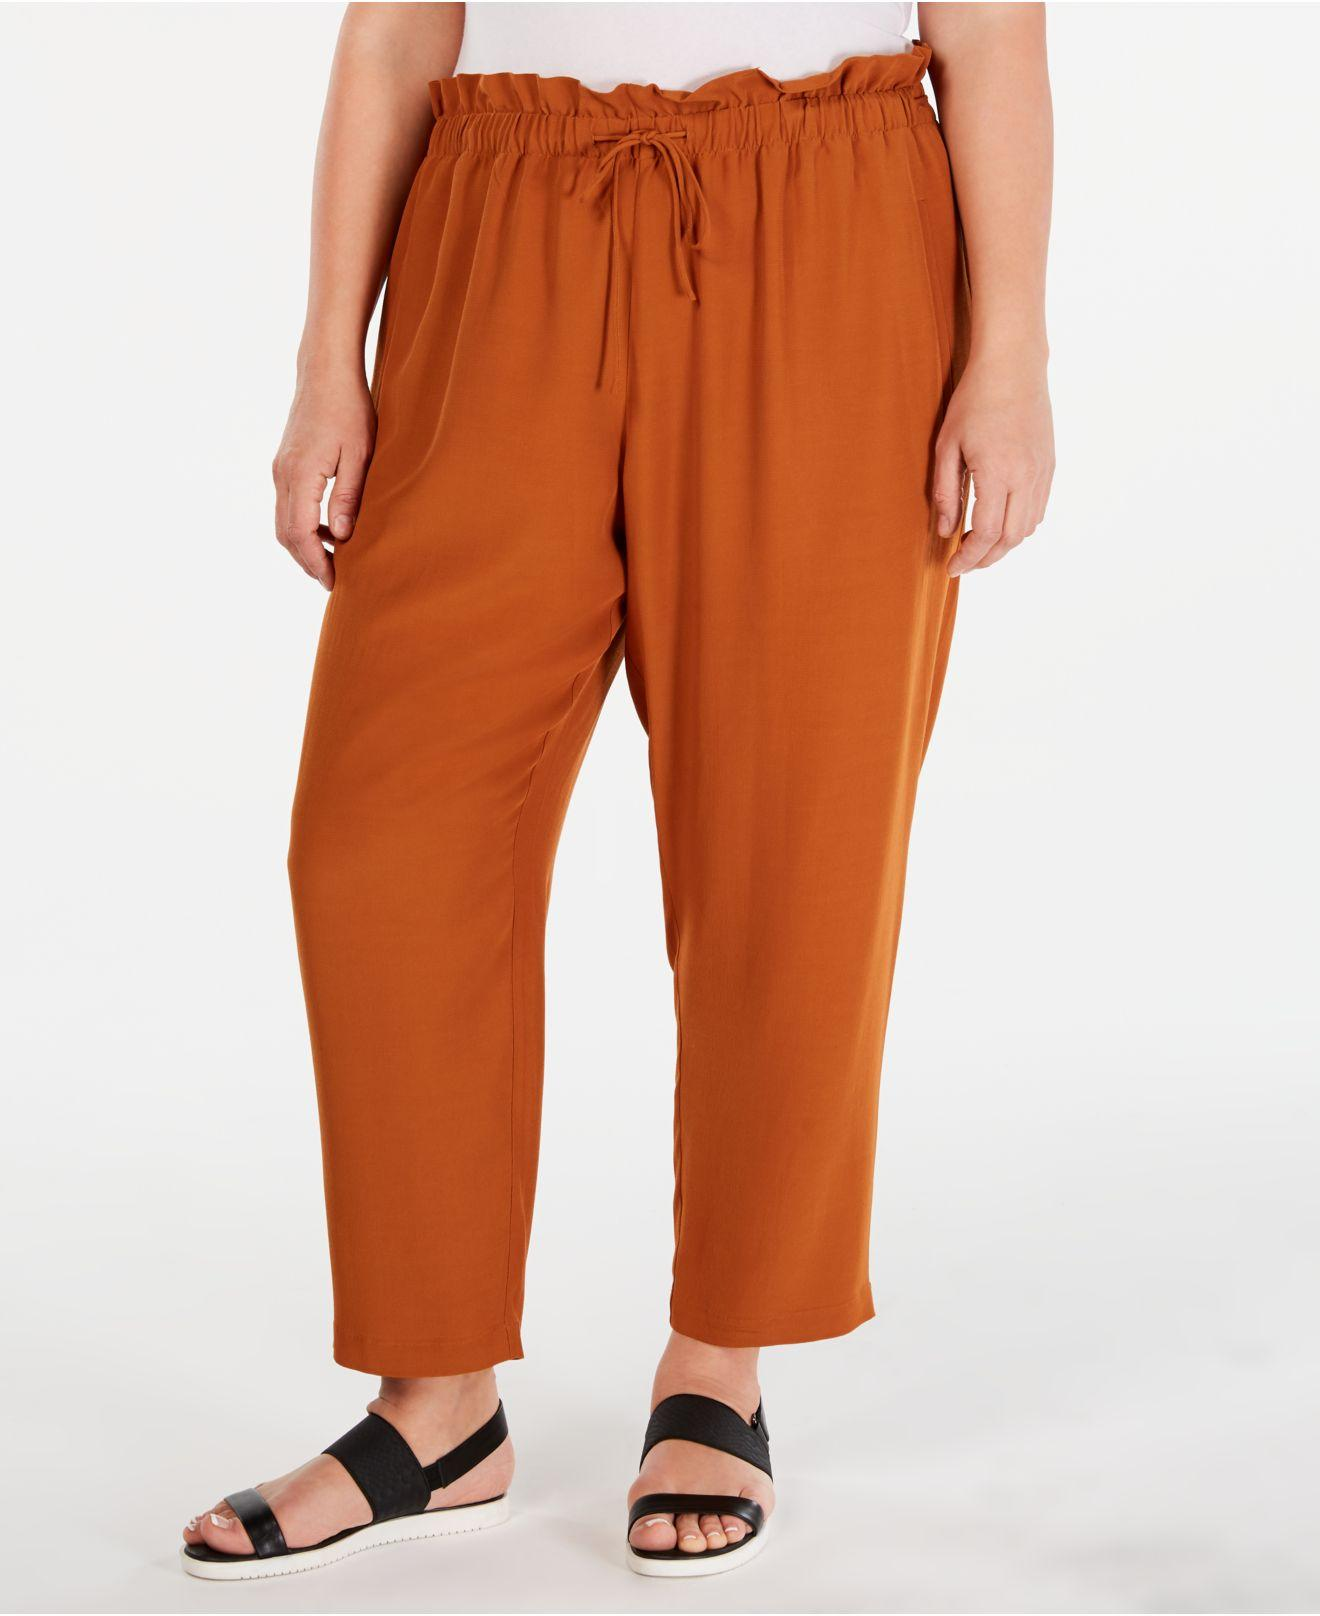 dcb9b4ade4a Lyst - Eileen Fisher Plus Size Paperbag-waist Straight-leg Pants in ...